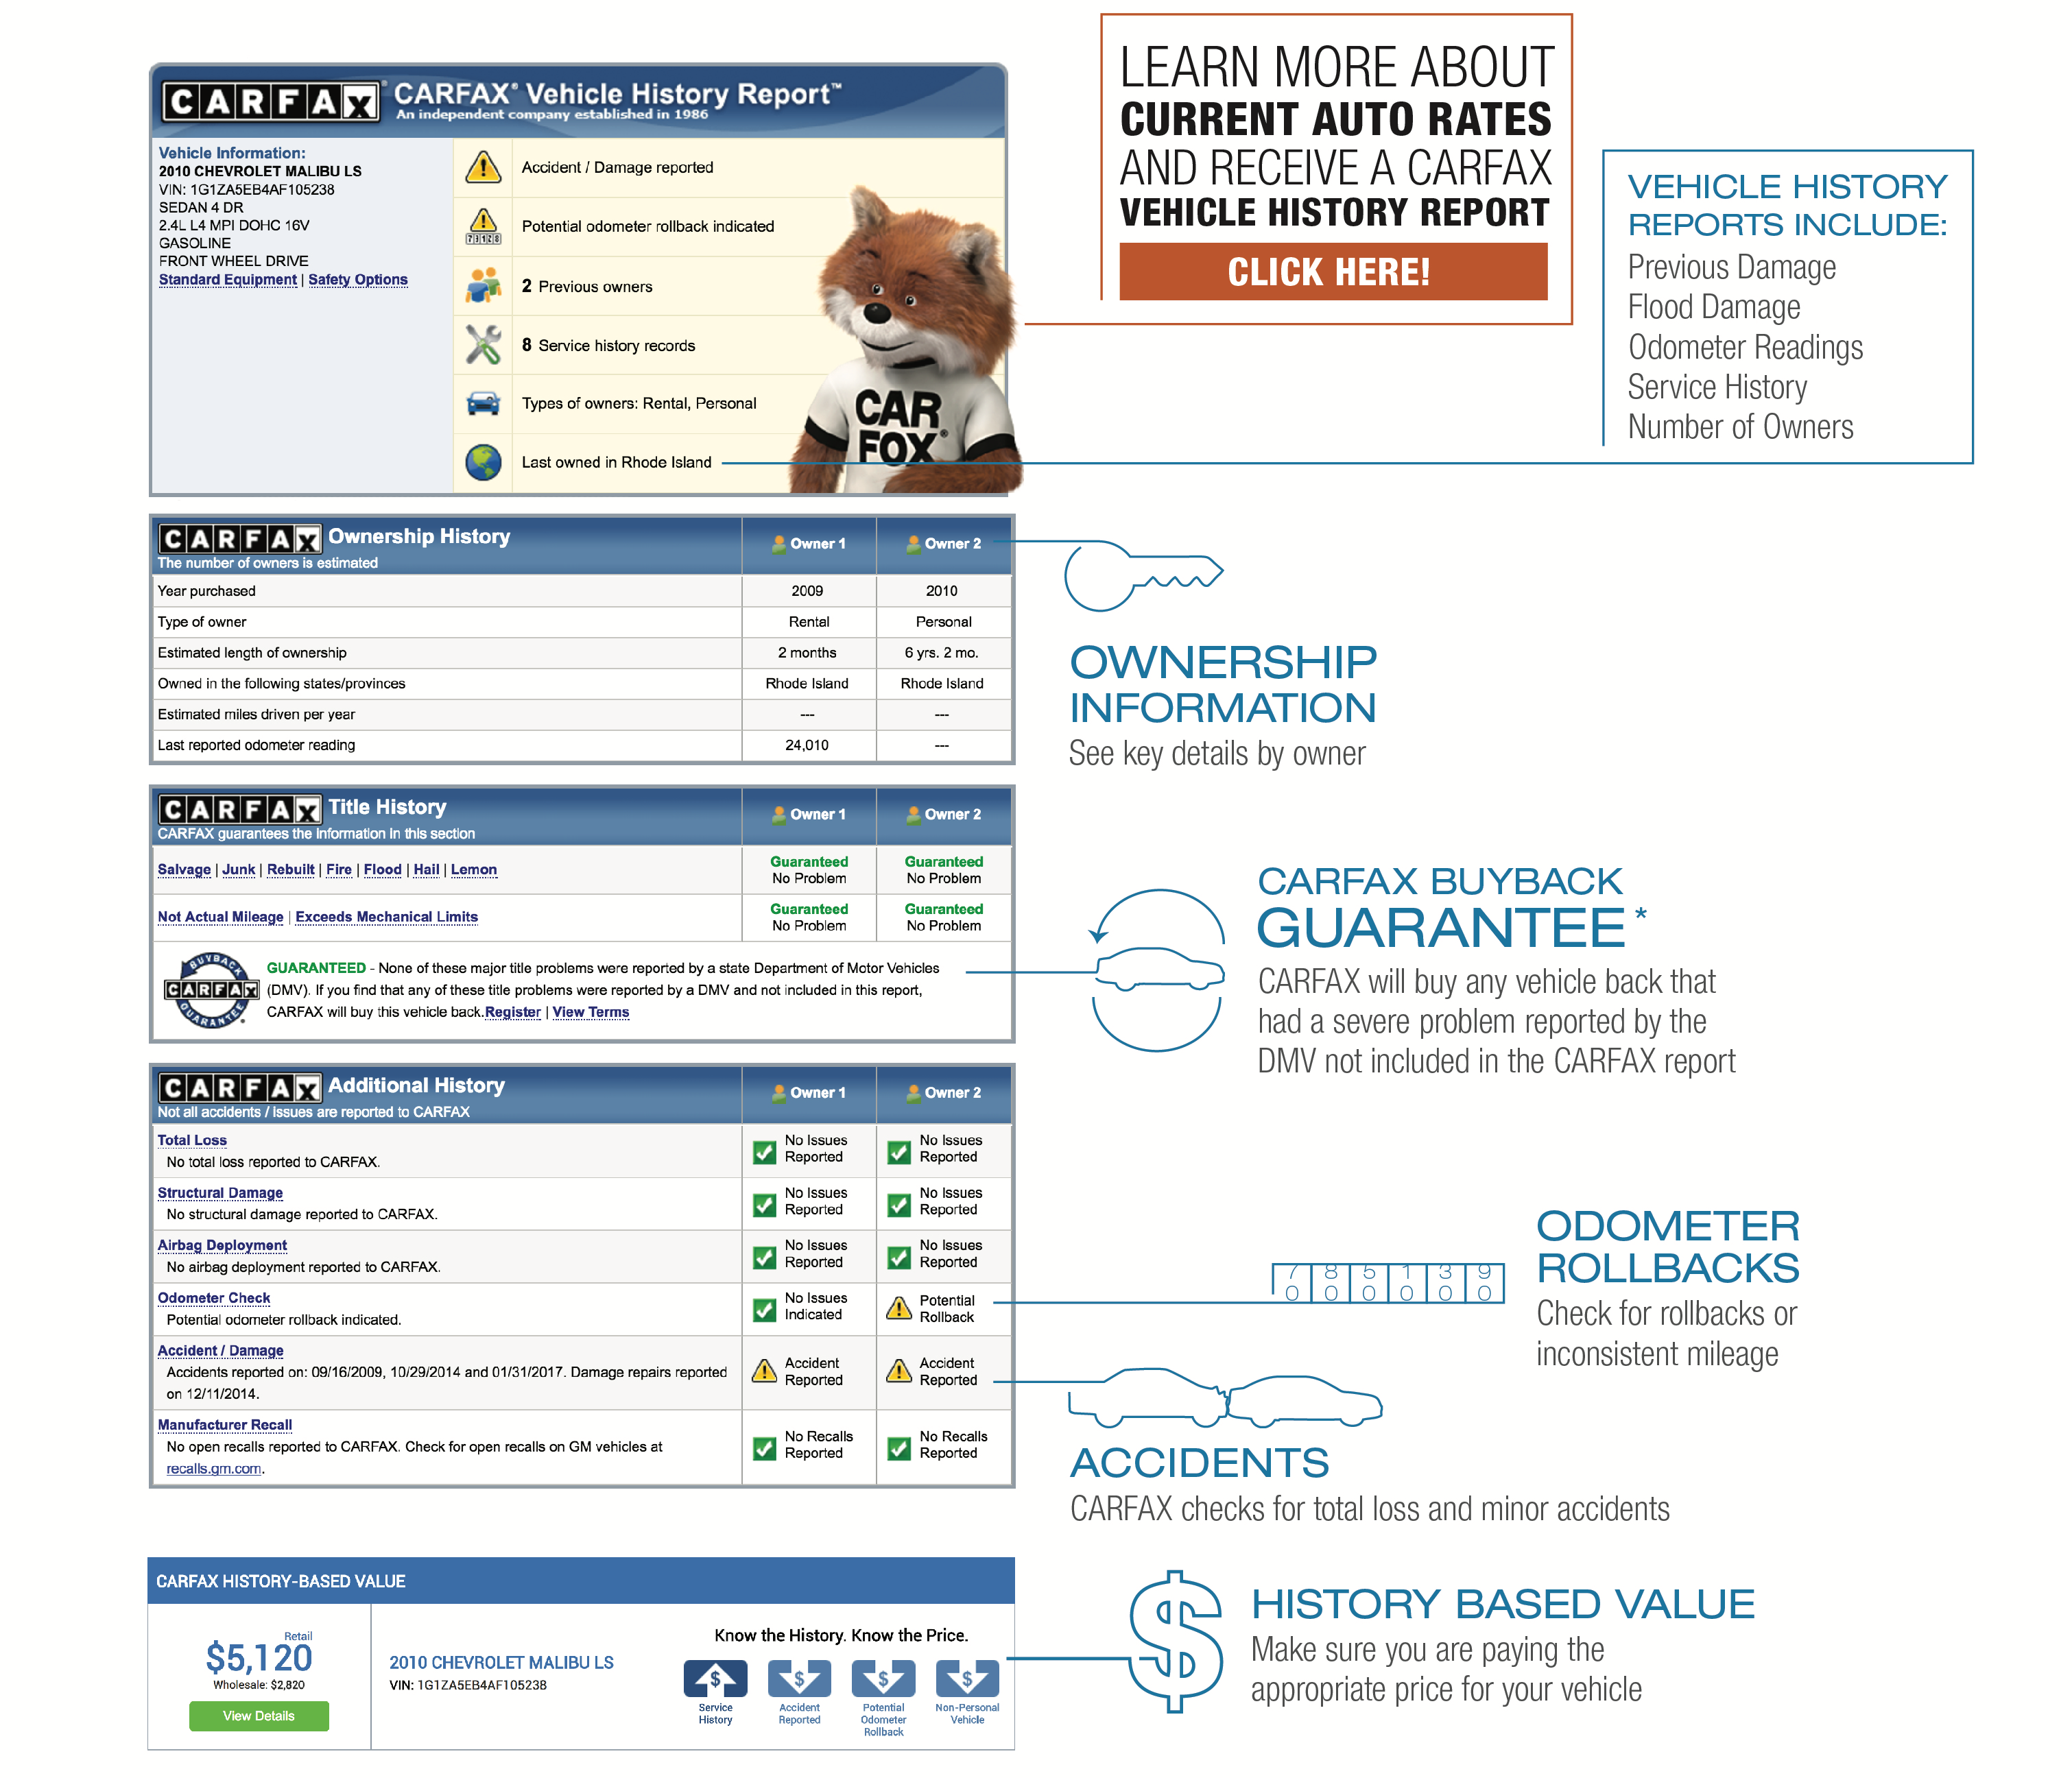 How to Get A Carfax Report without Paying Awesome Carfax Banking and Insurance Group More Information Better Decisions